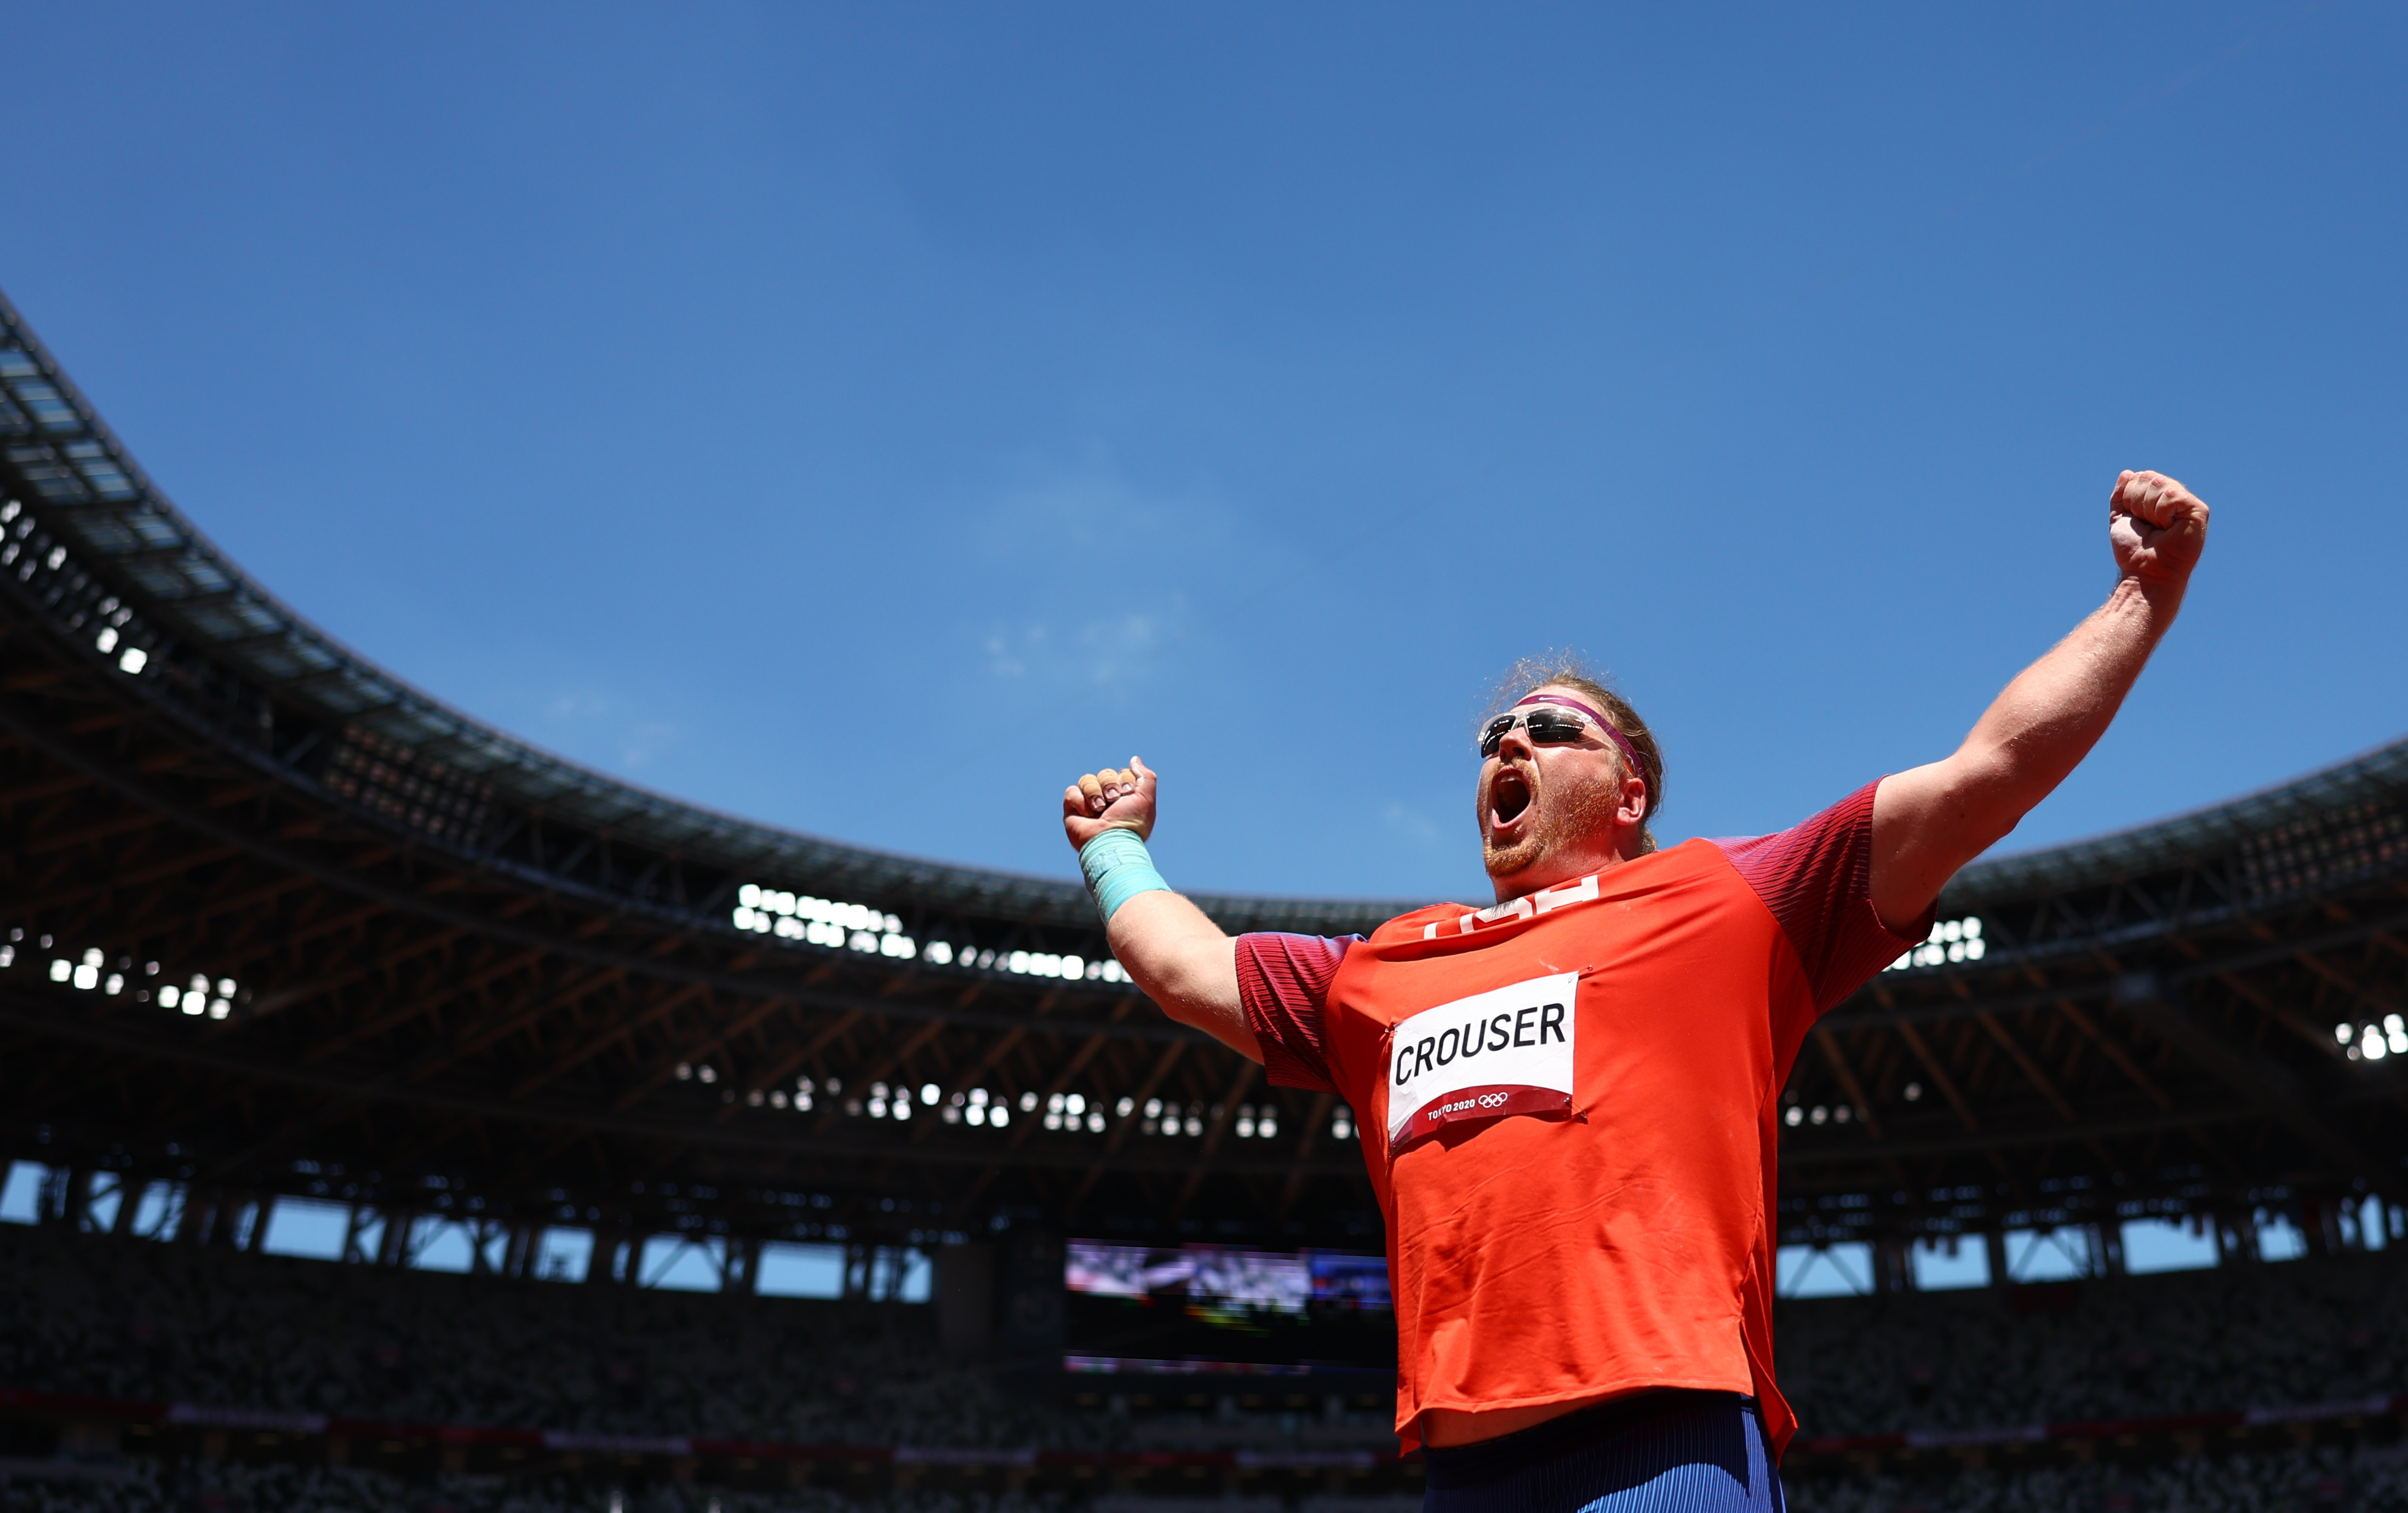 Tokyo 2020 Olympics - Athletics - Men's Shot Put - Final - Olympic Stadium, Tokyo, Japan - August 5, 2021. Ryan Crouser of the United States celebrates after winning gold and a new Olympic Record REUTERS/Kai Pfaffenbach